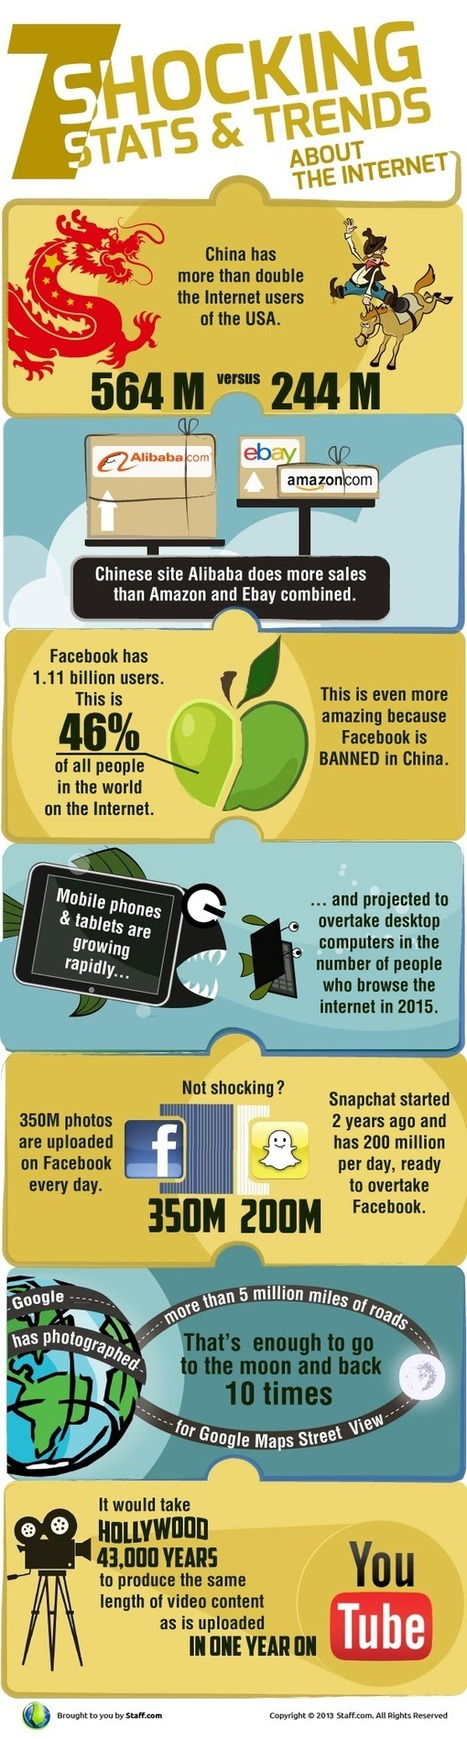 7 Shocking Stats & Trends about Internet | Pop Media Strategy | Scoop.it